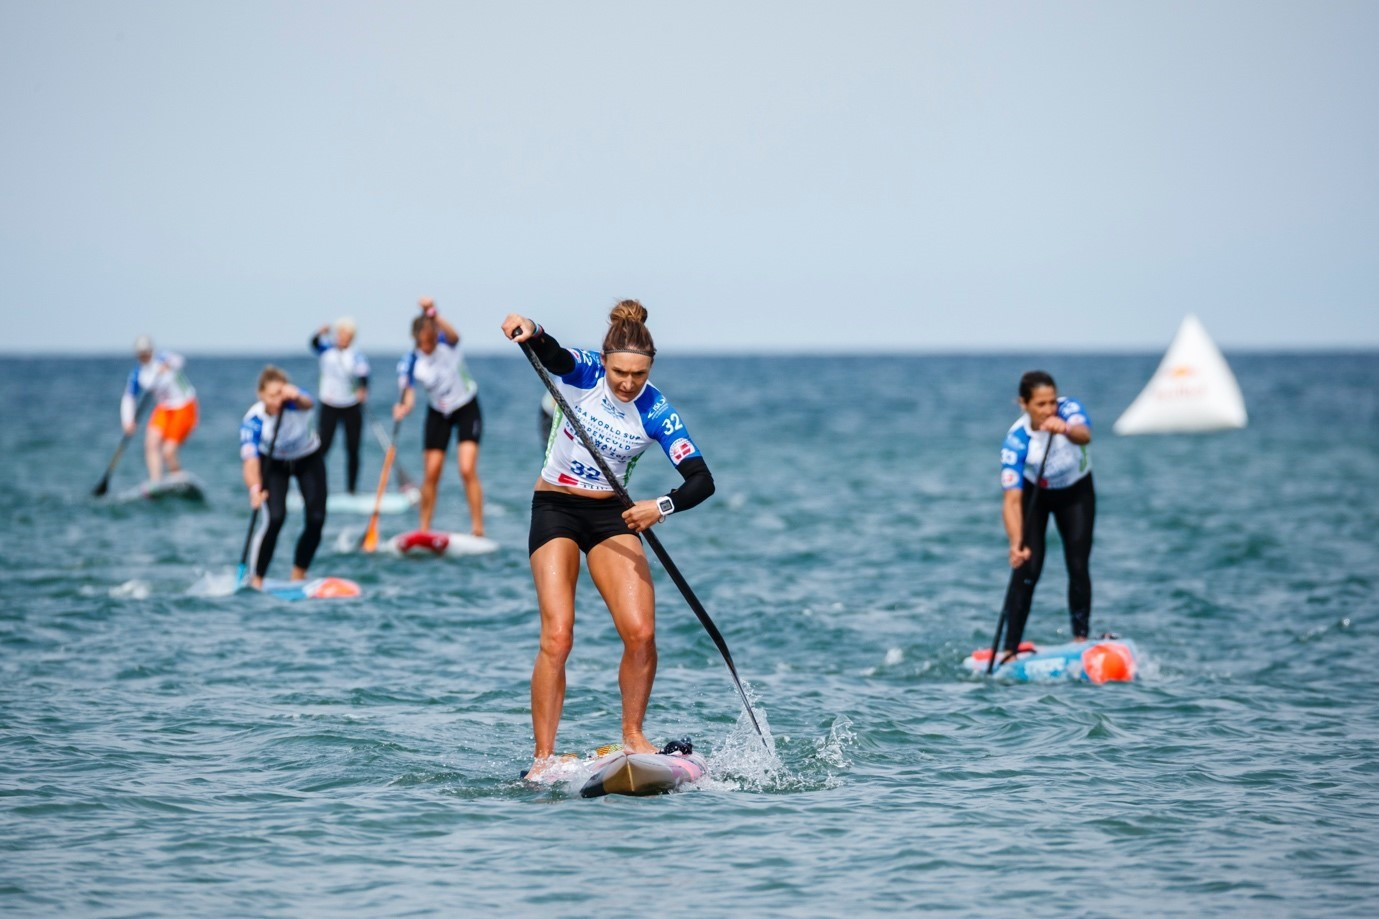 The announcement comes after gender equity was successfully featured for the first time at the 2017 ISA World StandUp Paddle and Paddleboard Championship in Denmark ©ISA